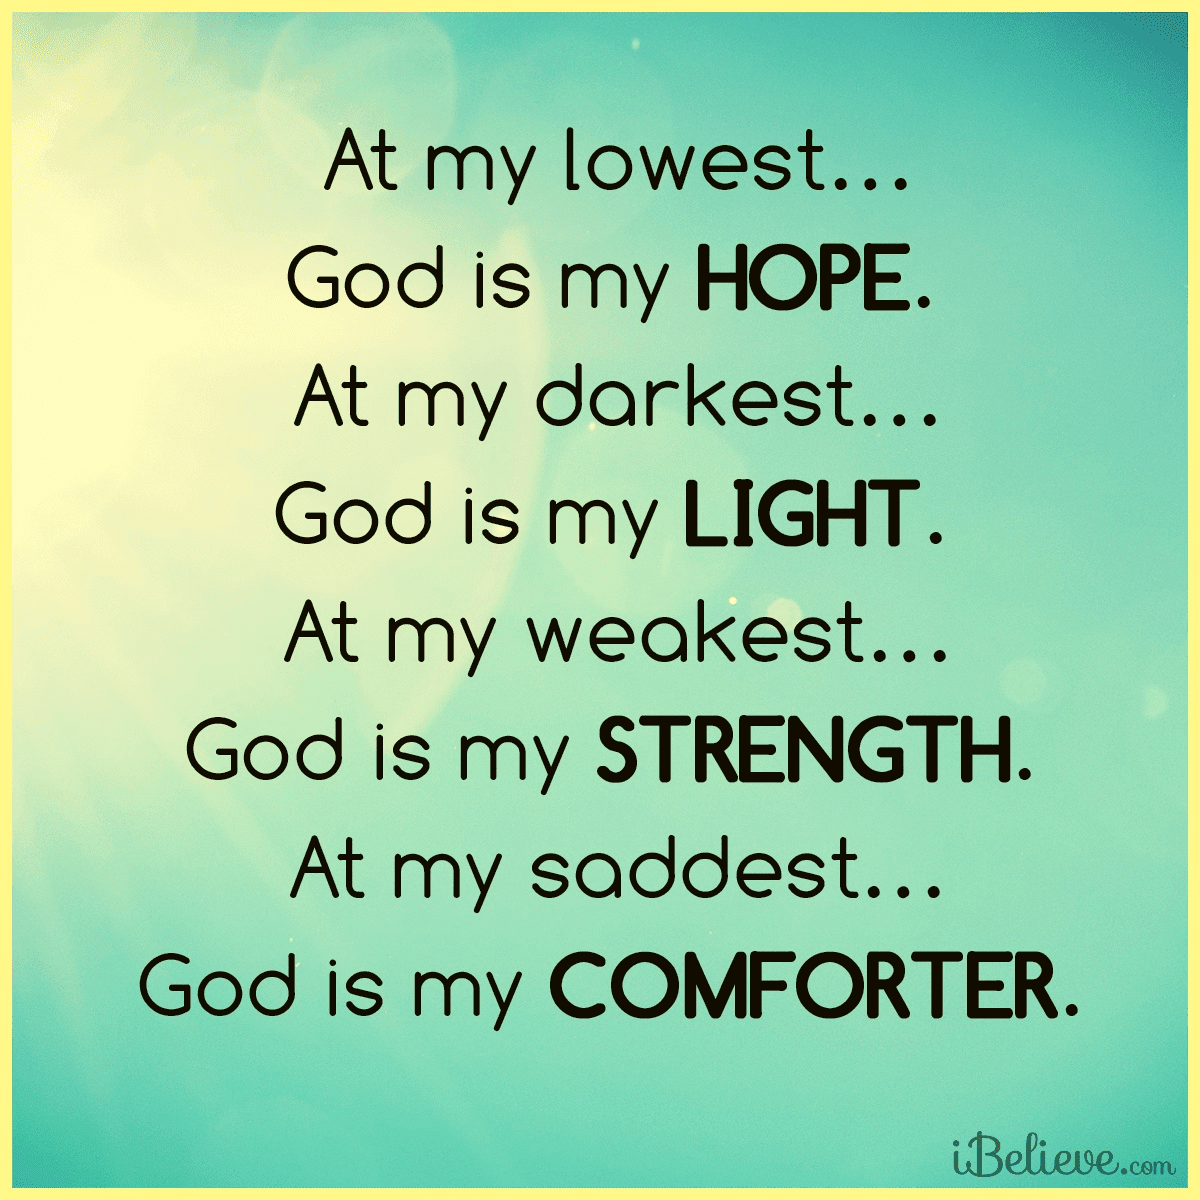 At My Lowest, God is My Hope